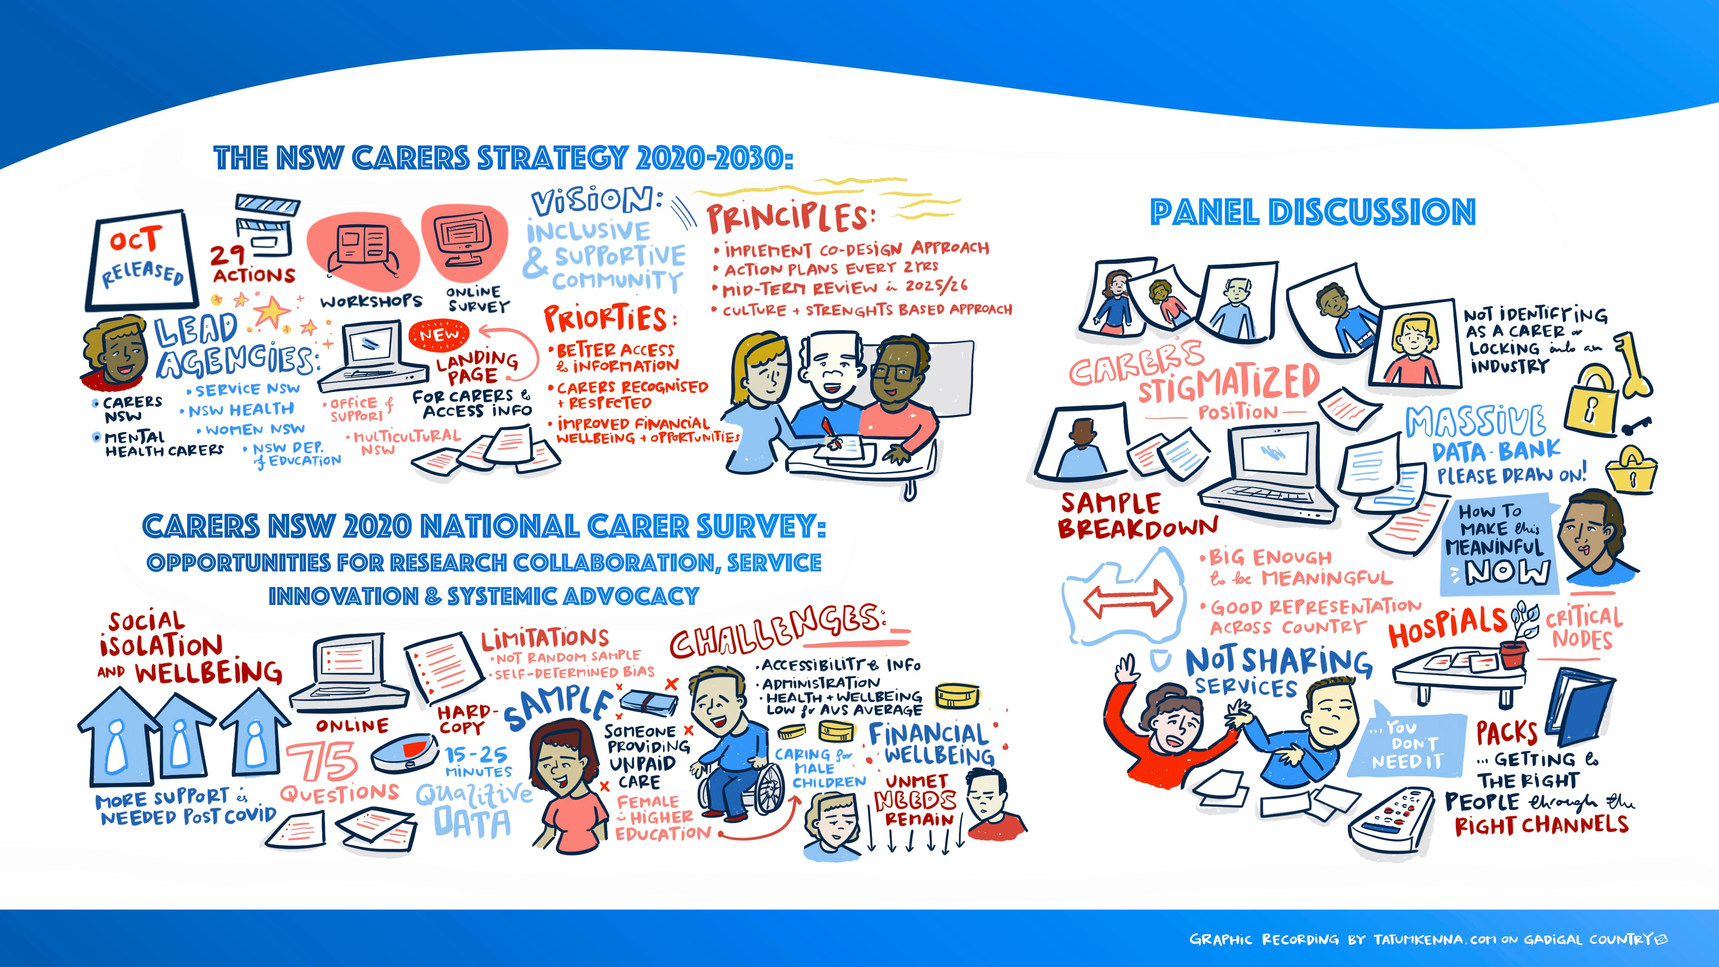 03_NSW Carers Strategy_2020 National Car